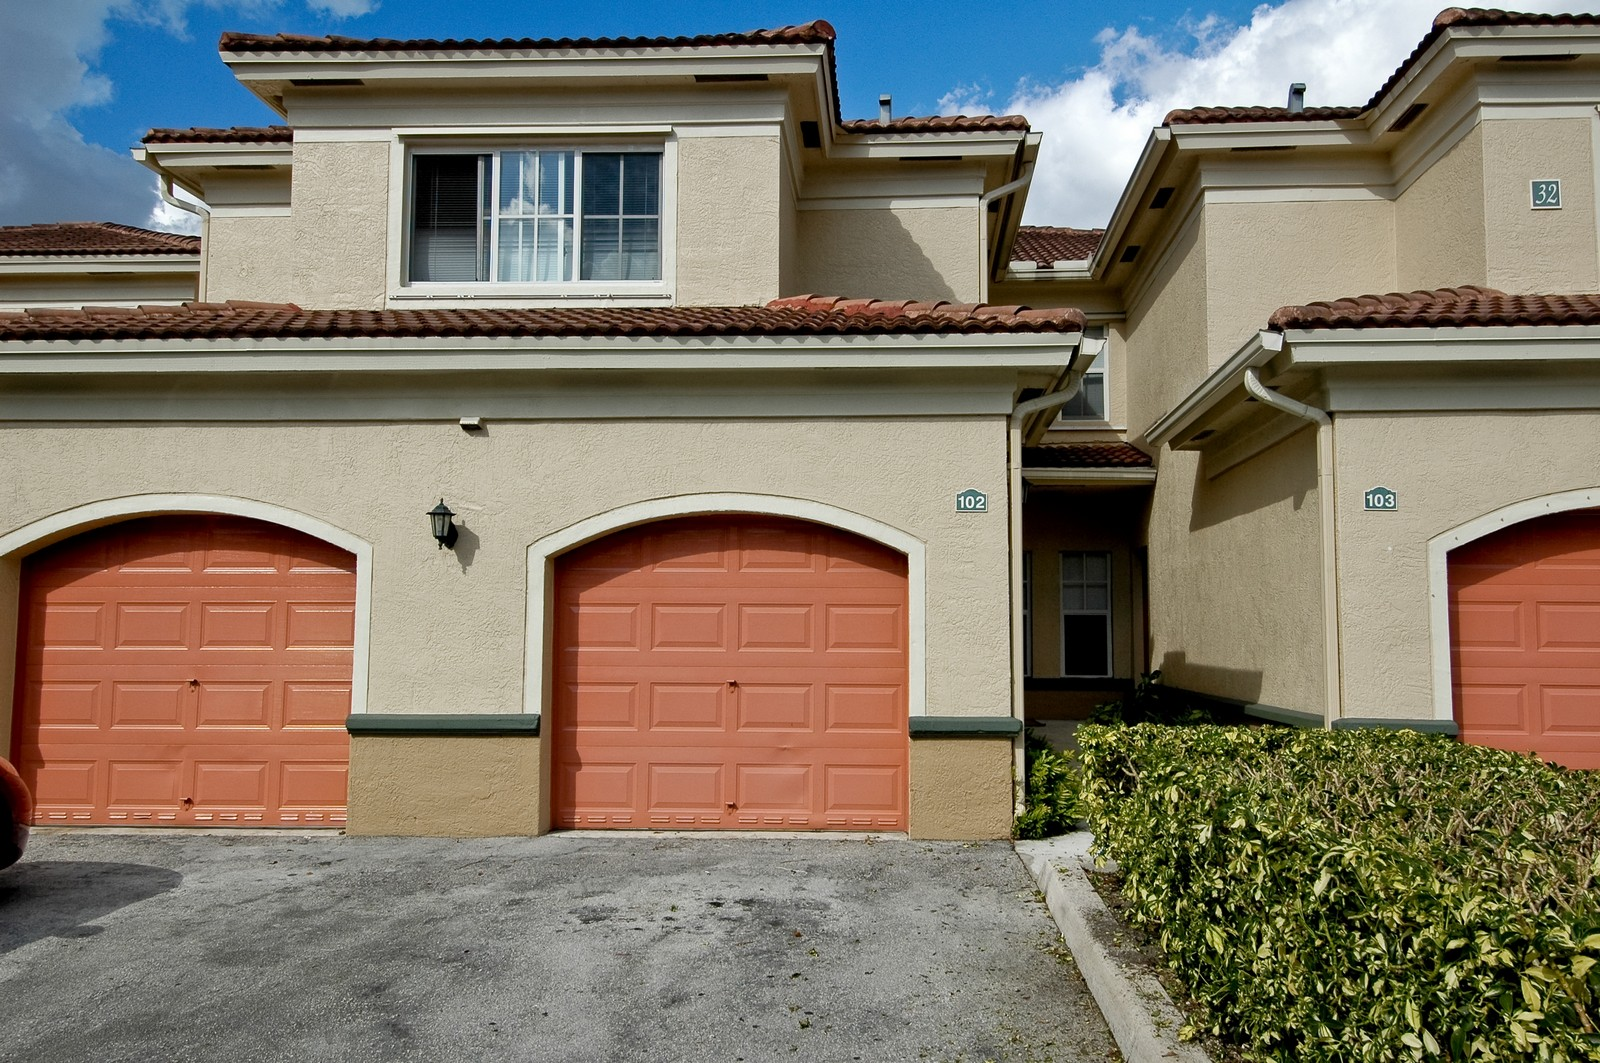 Real Estate Photography - 25117 Center Gate Dr, Apt 102, Miramar, FL, 33025 - Front View